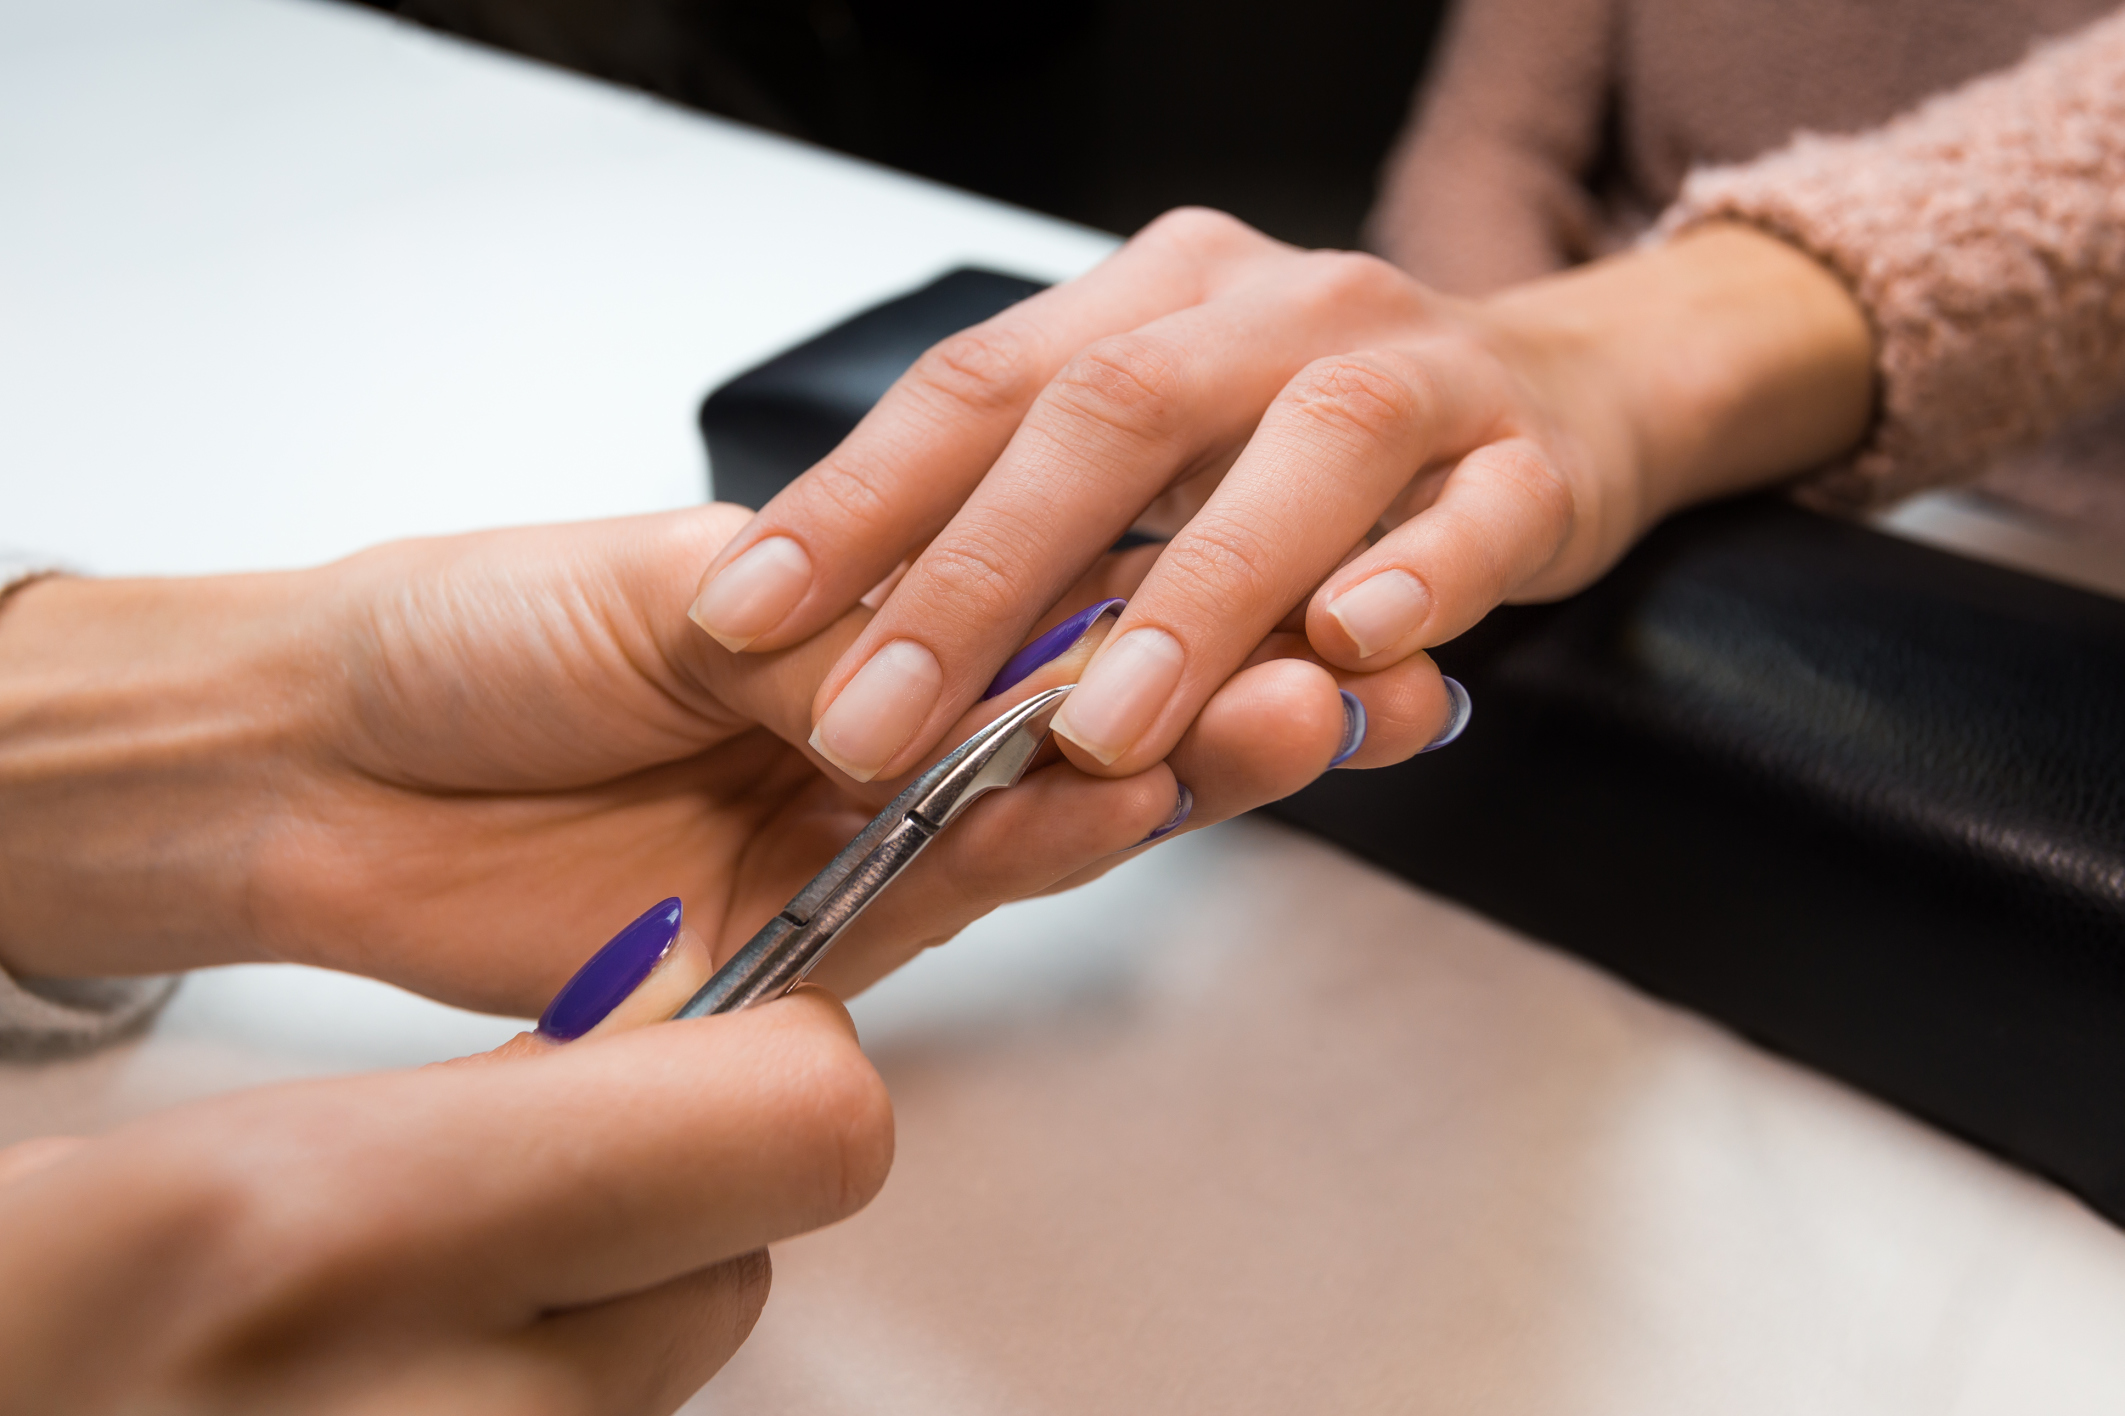 Treatments for Ragged Cuticles | LIVESTRONG.COM